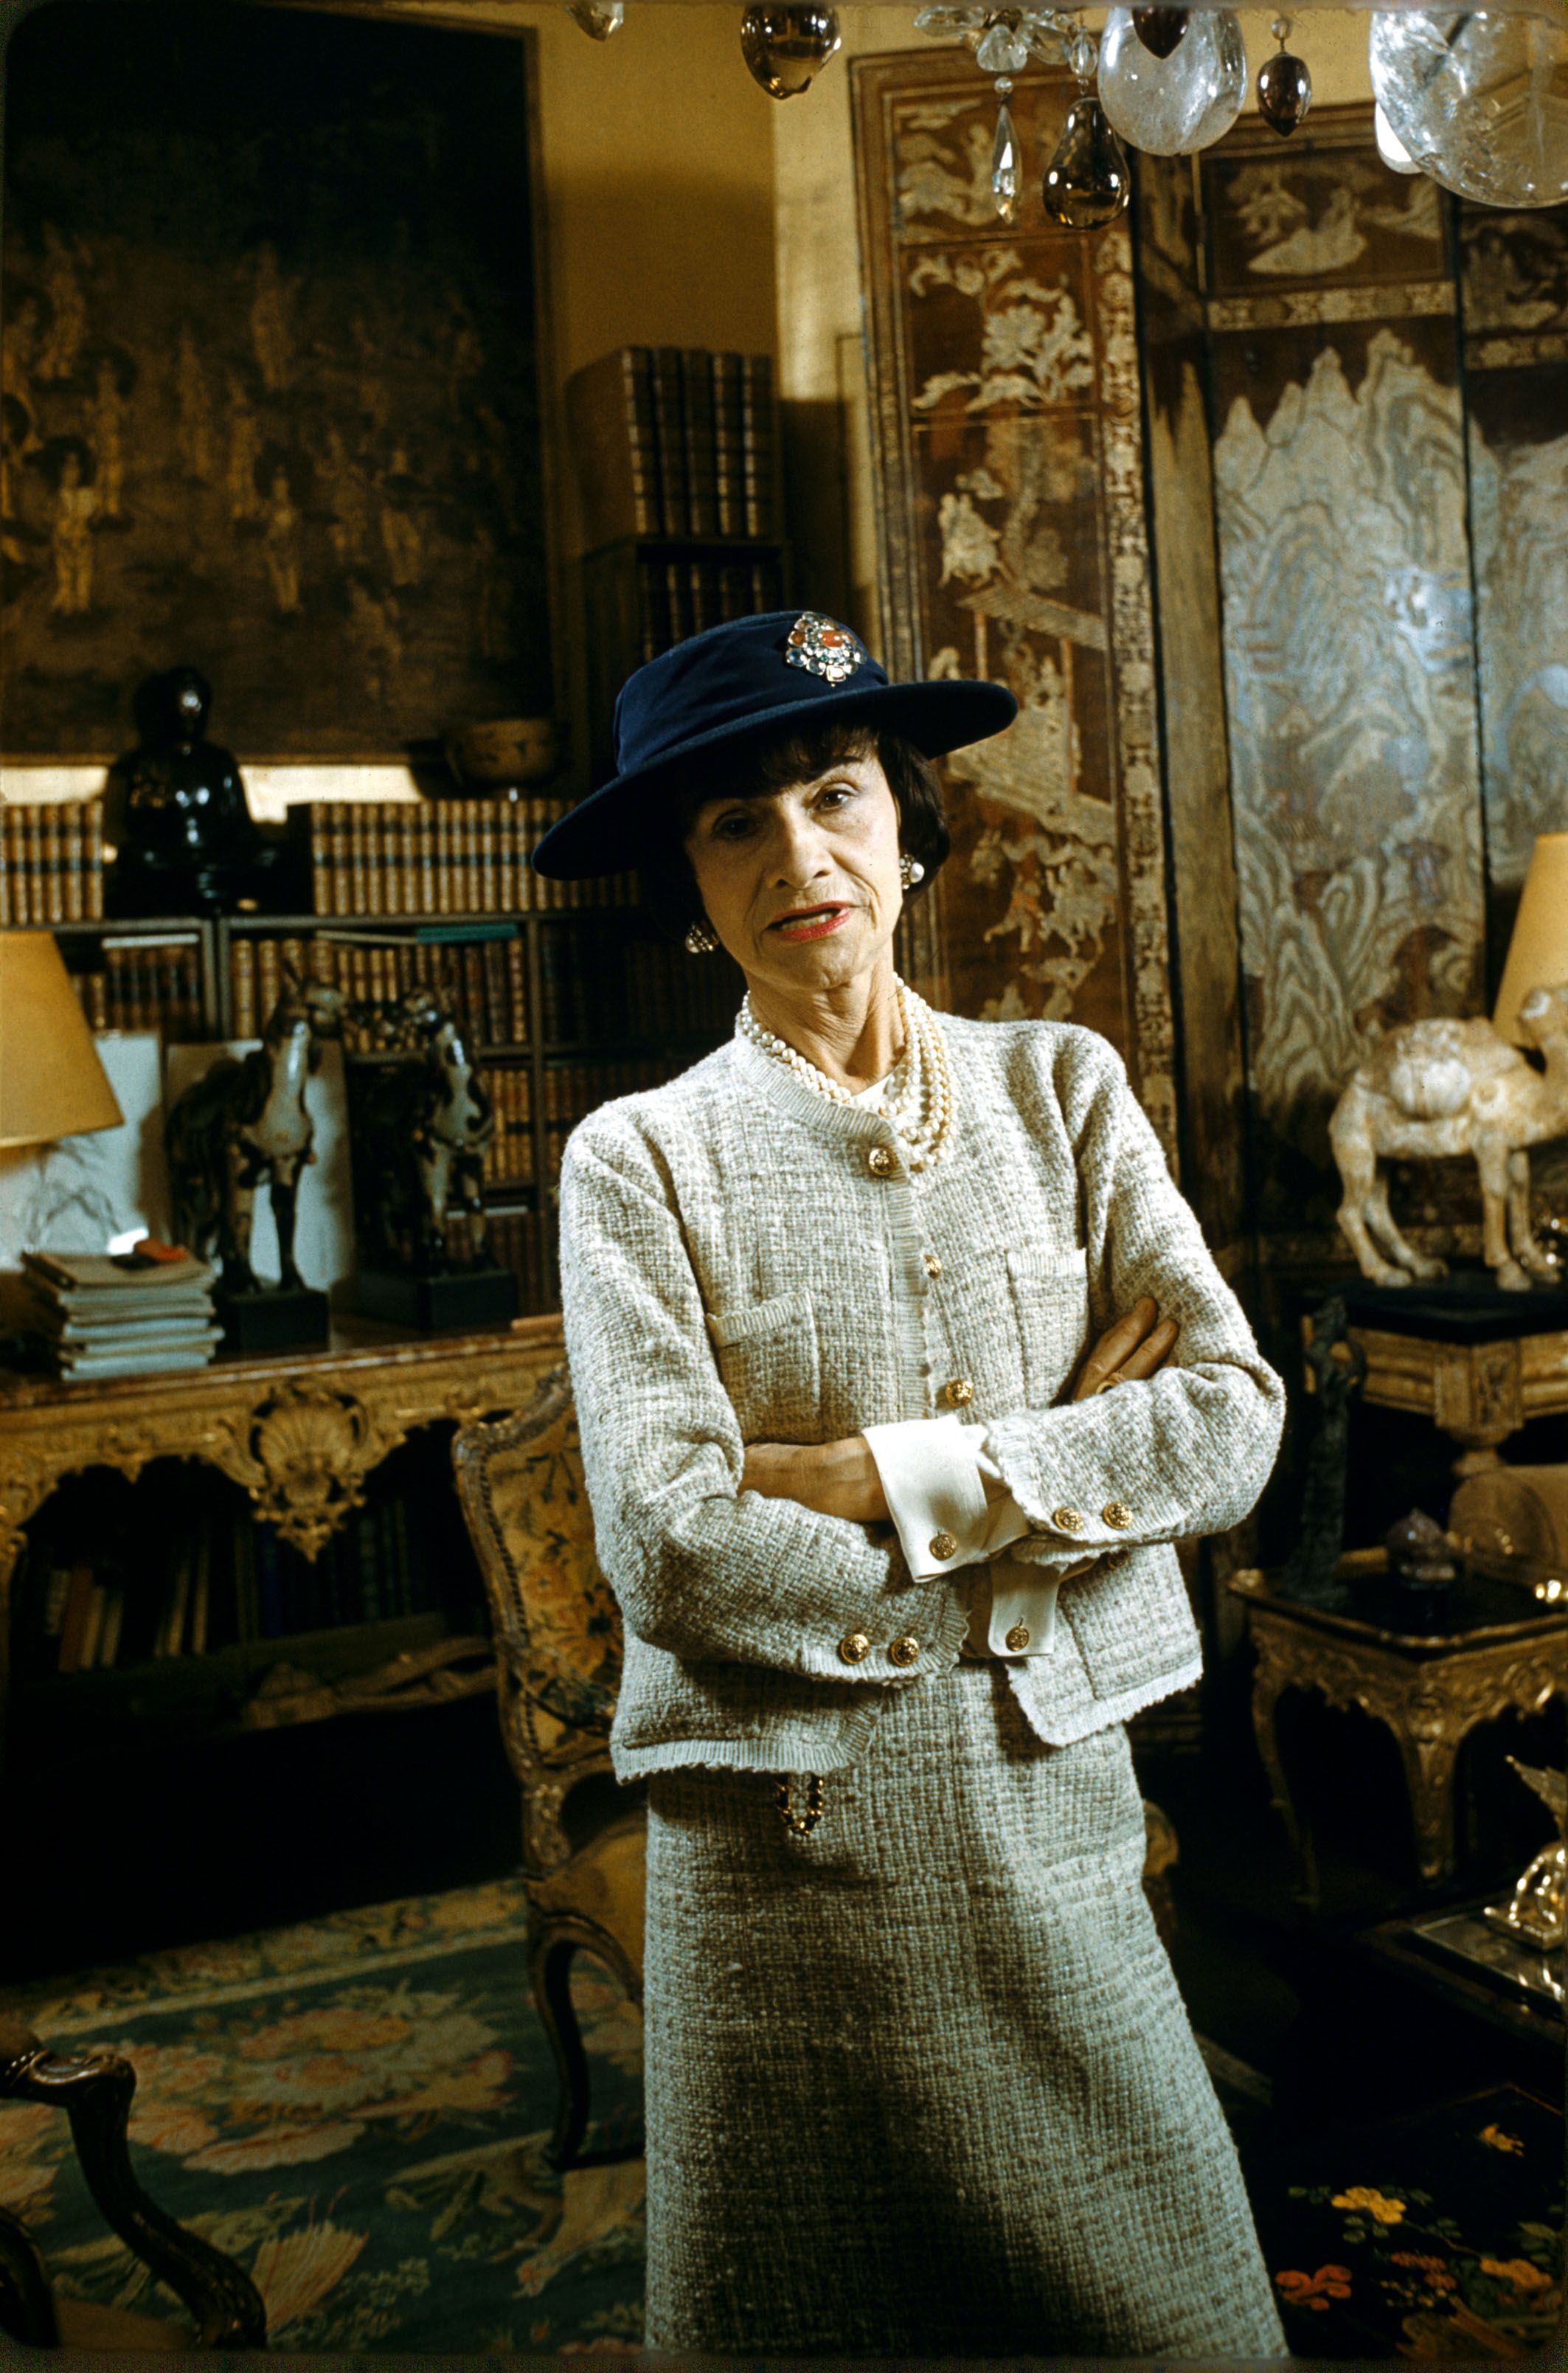 Image Source: Getty Images/Gamma-Rapho via Getty Images/KAMMERMAN | Coco Chanel circa 1959